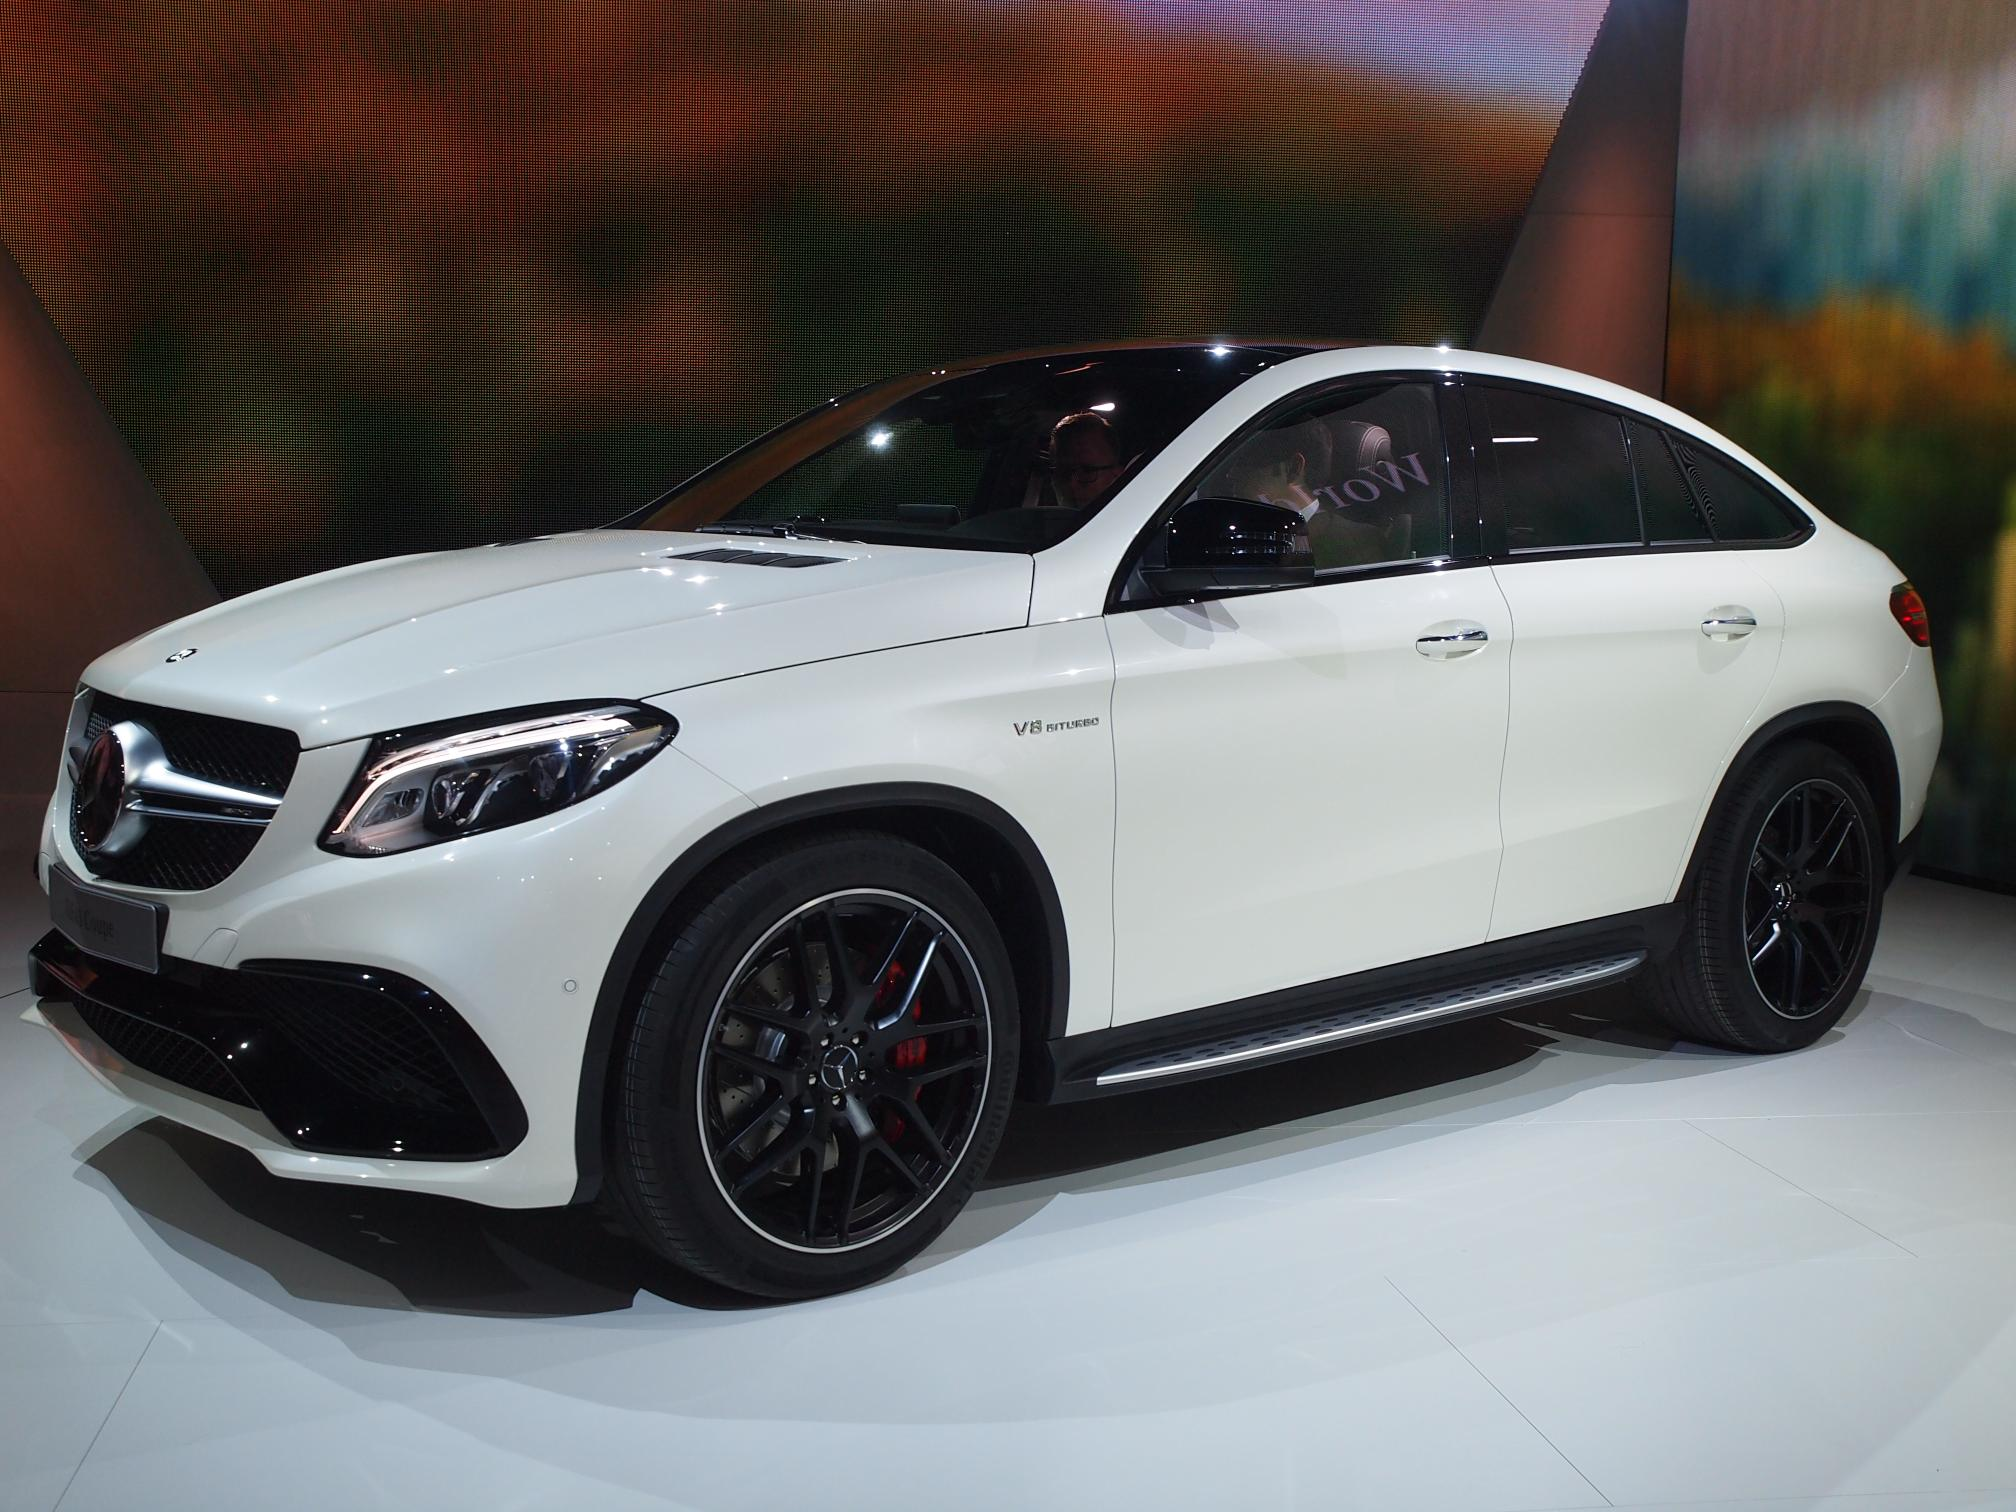 The New Mercedes Amg Gle 63 Coupe 4matic Driving Performance Reinterpreted Myautoworld Com